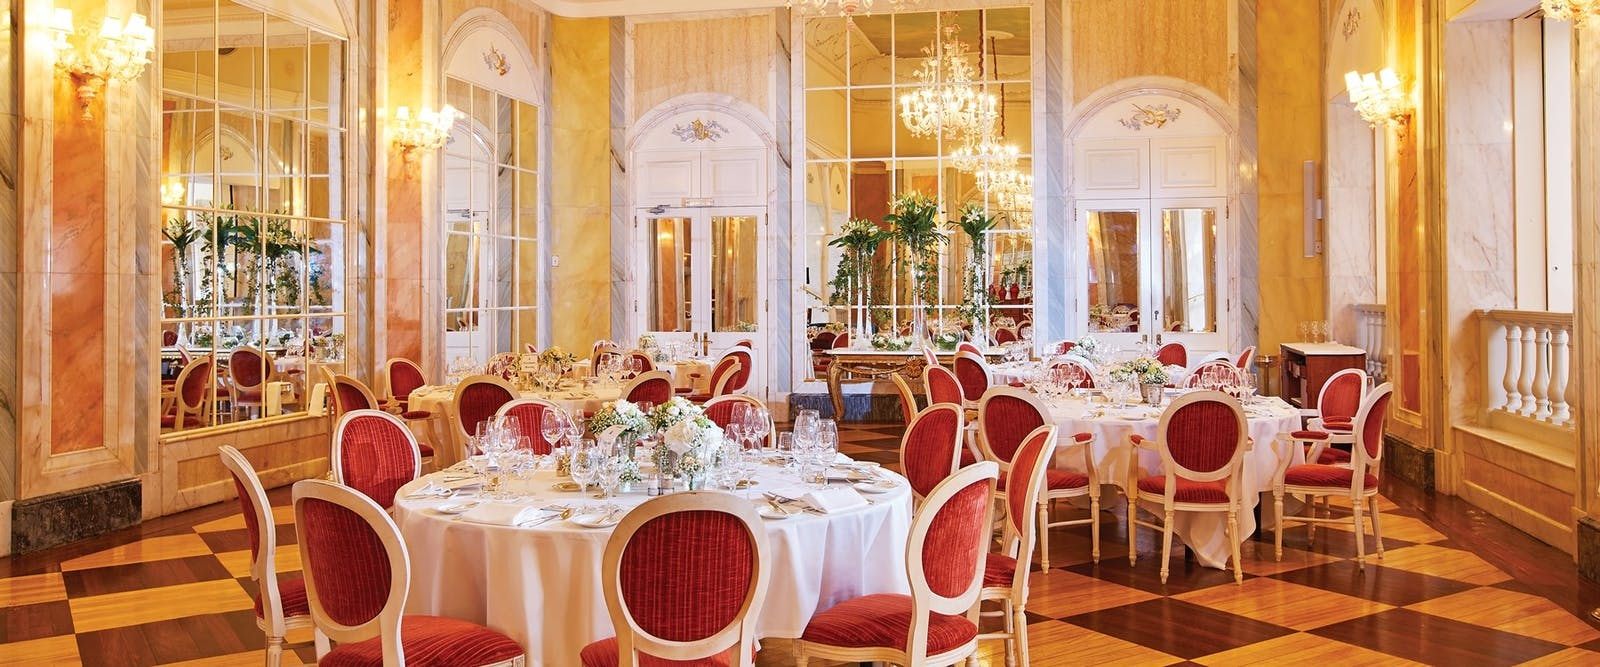 The Dining Room at Belmond Reids Palace, Madeira, Portugal